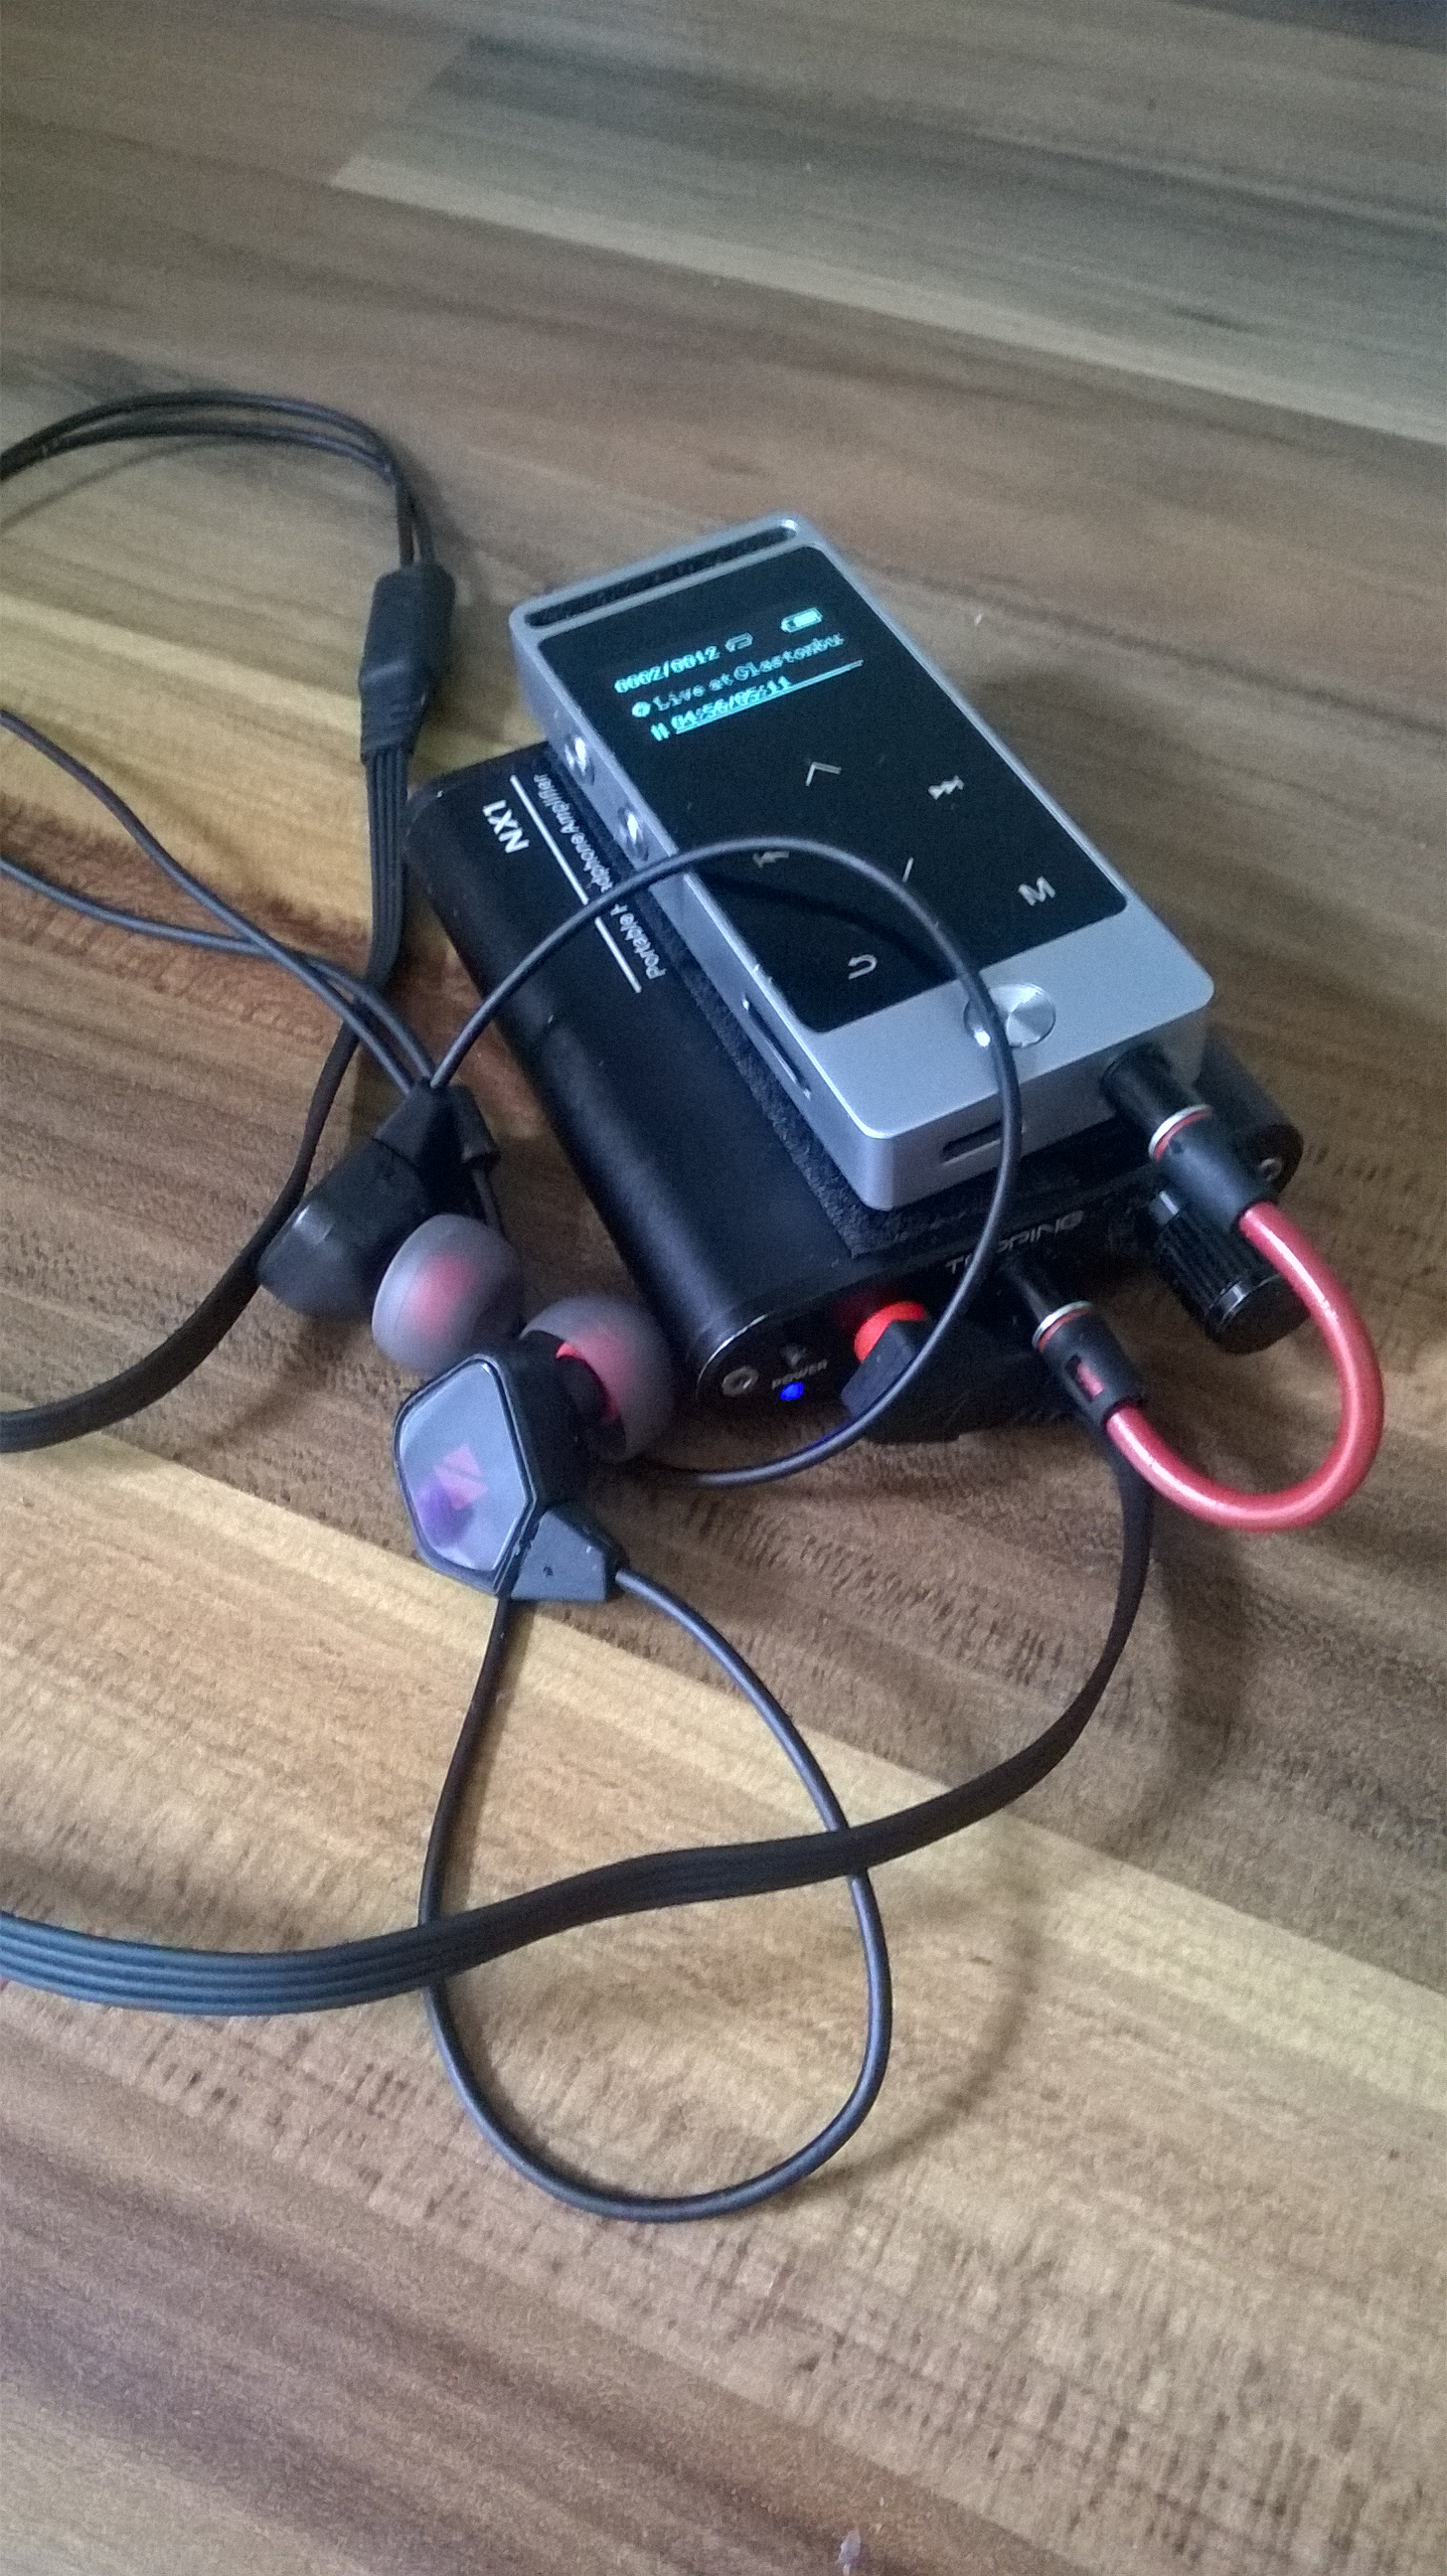 BENJIE S5 Entry-level Lossless Music Player